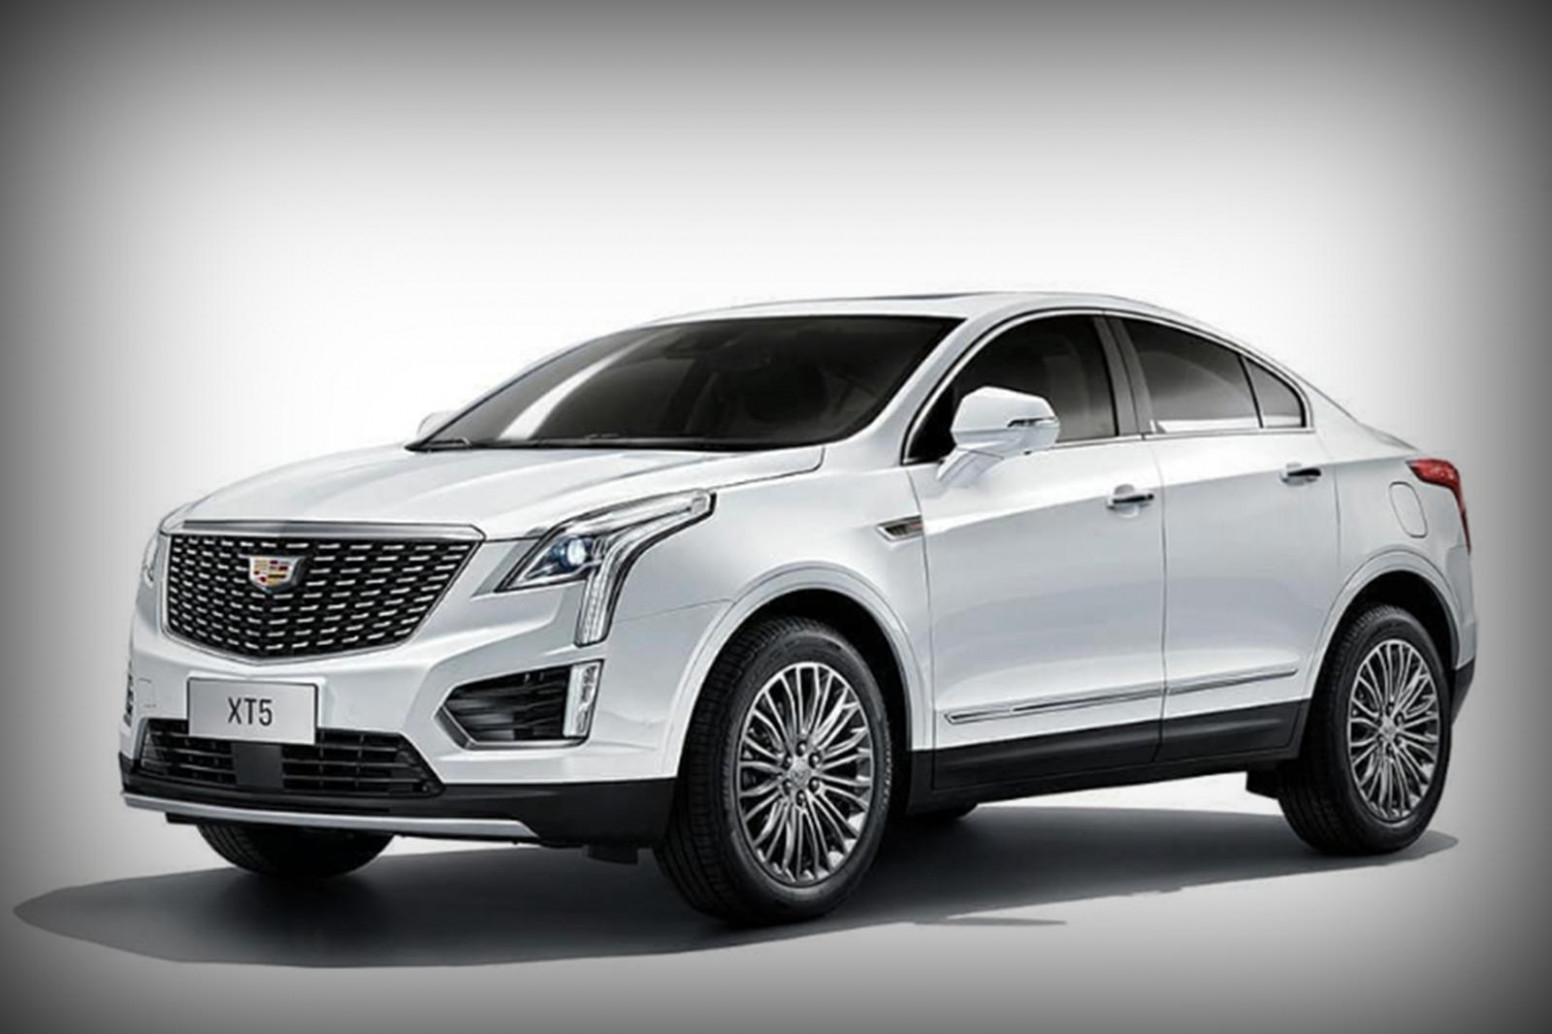 Wallpaper 2022 Spy Shots Cadillac Xt5